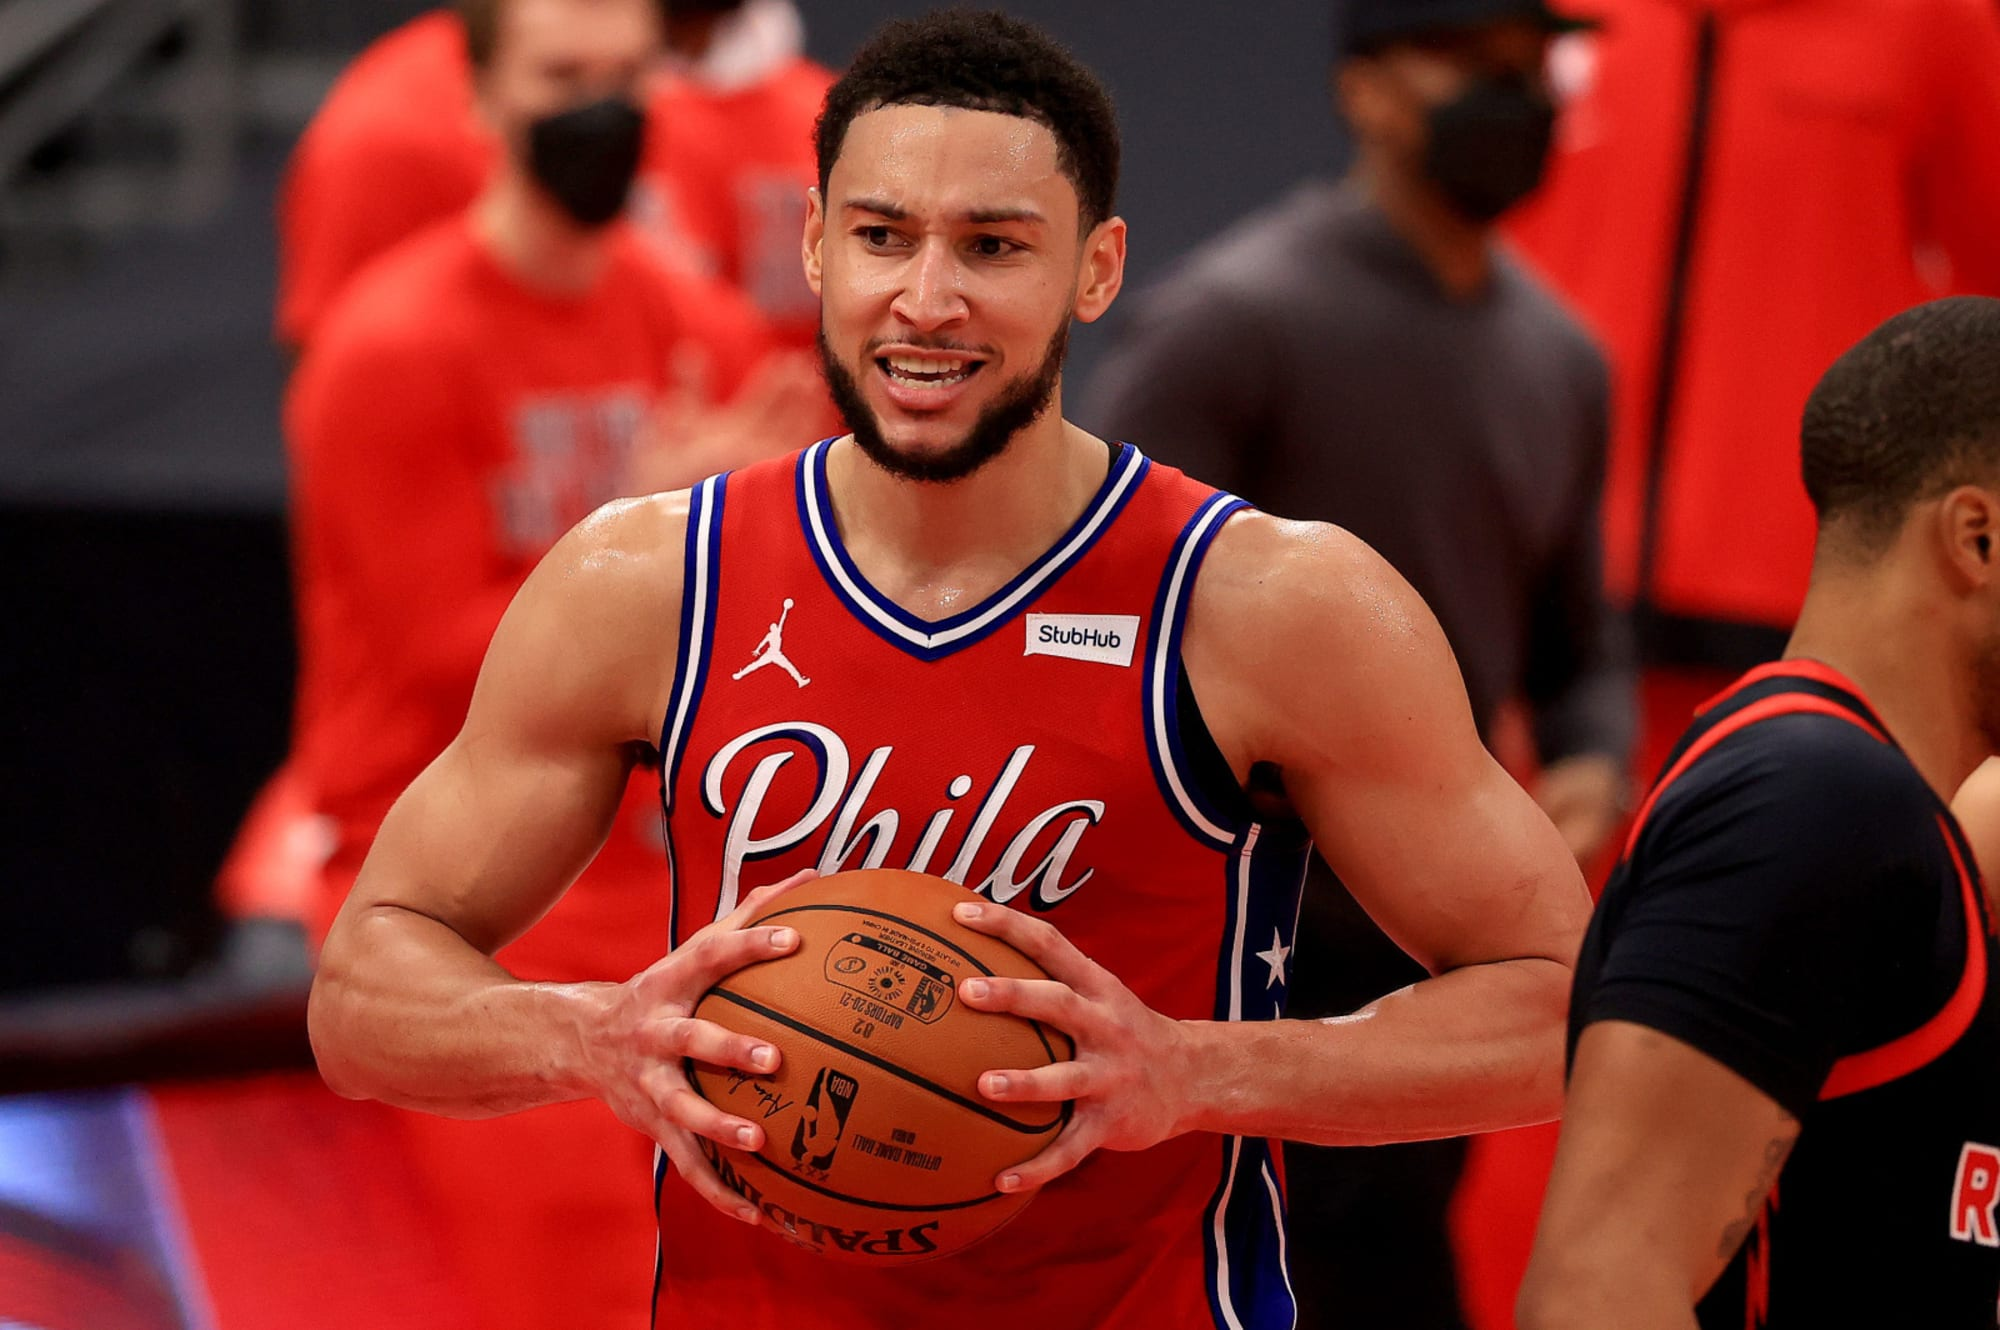 Toronto Raptors: Pros and cons of a trade for Ben Simmons